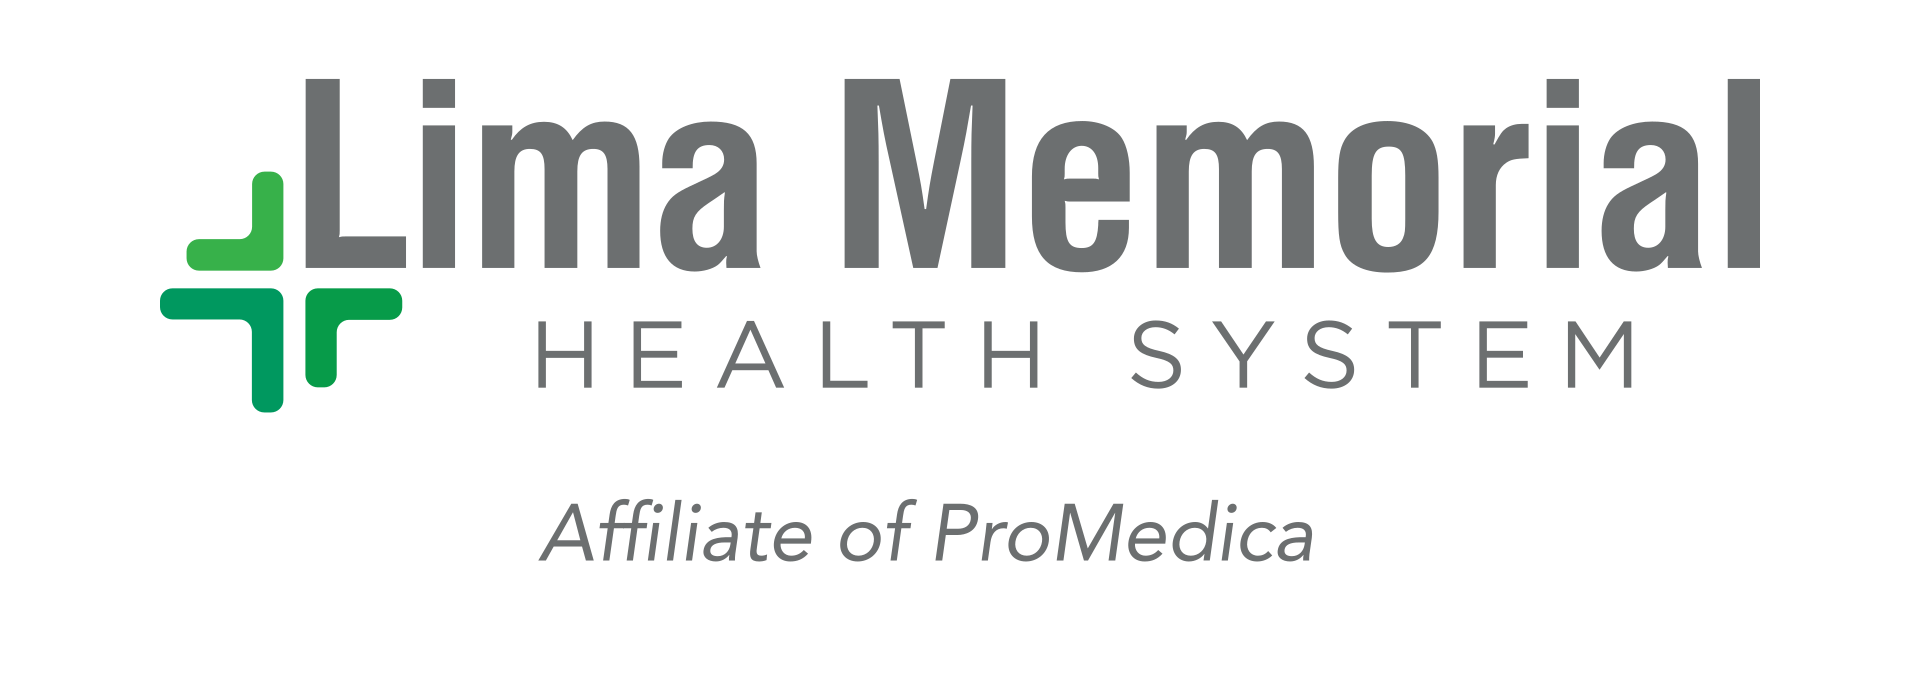 Lima_Memorial_Health_System_logo.png